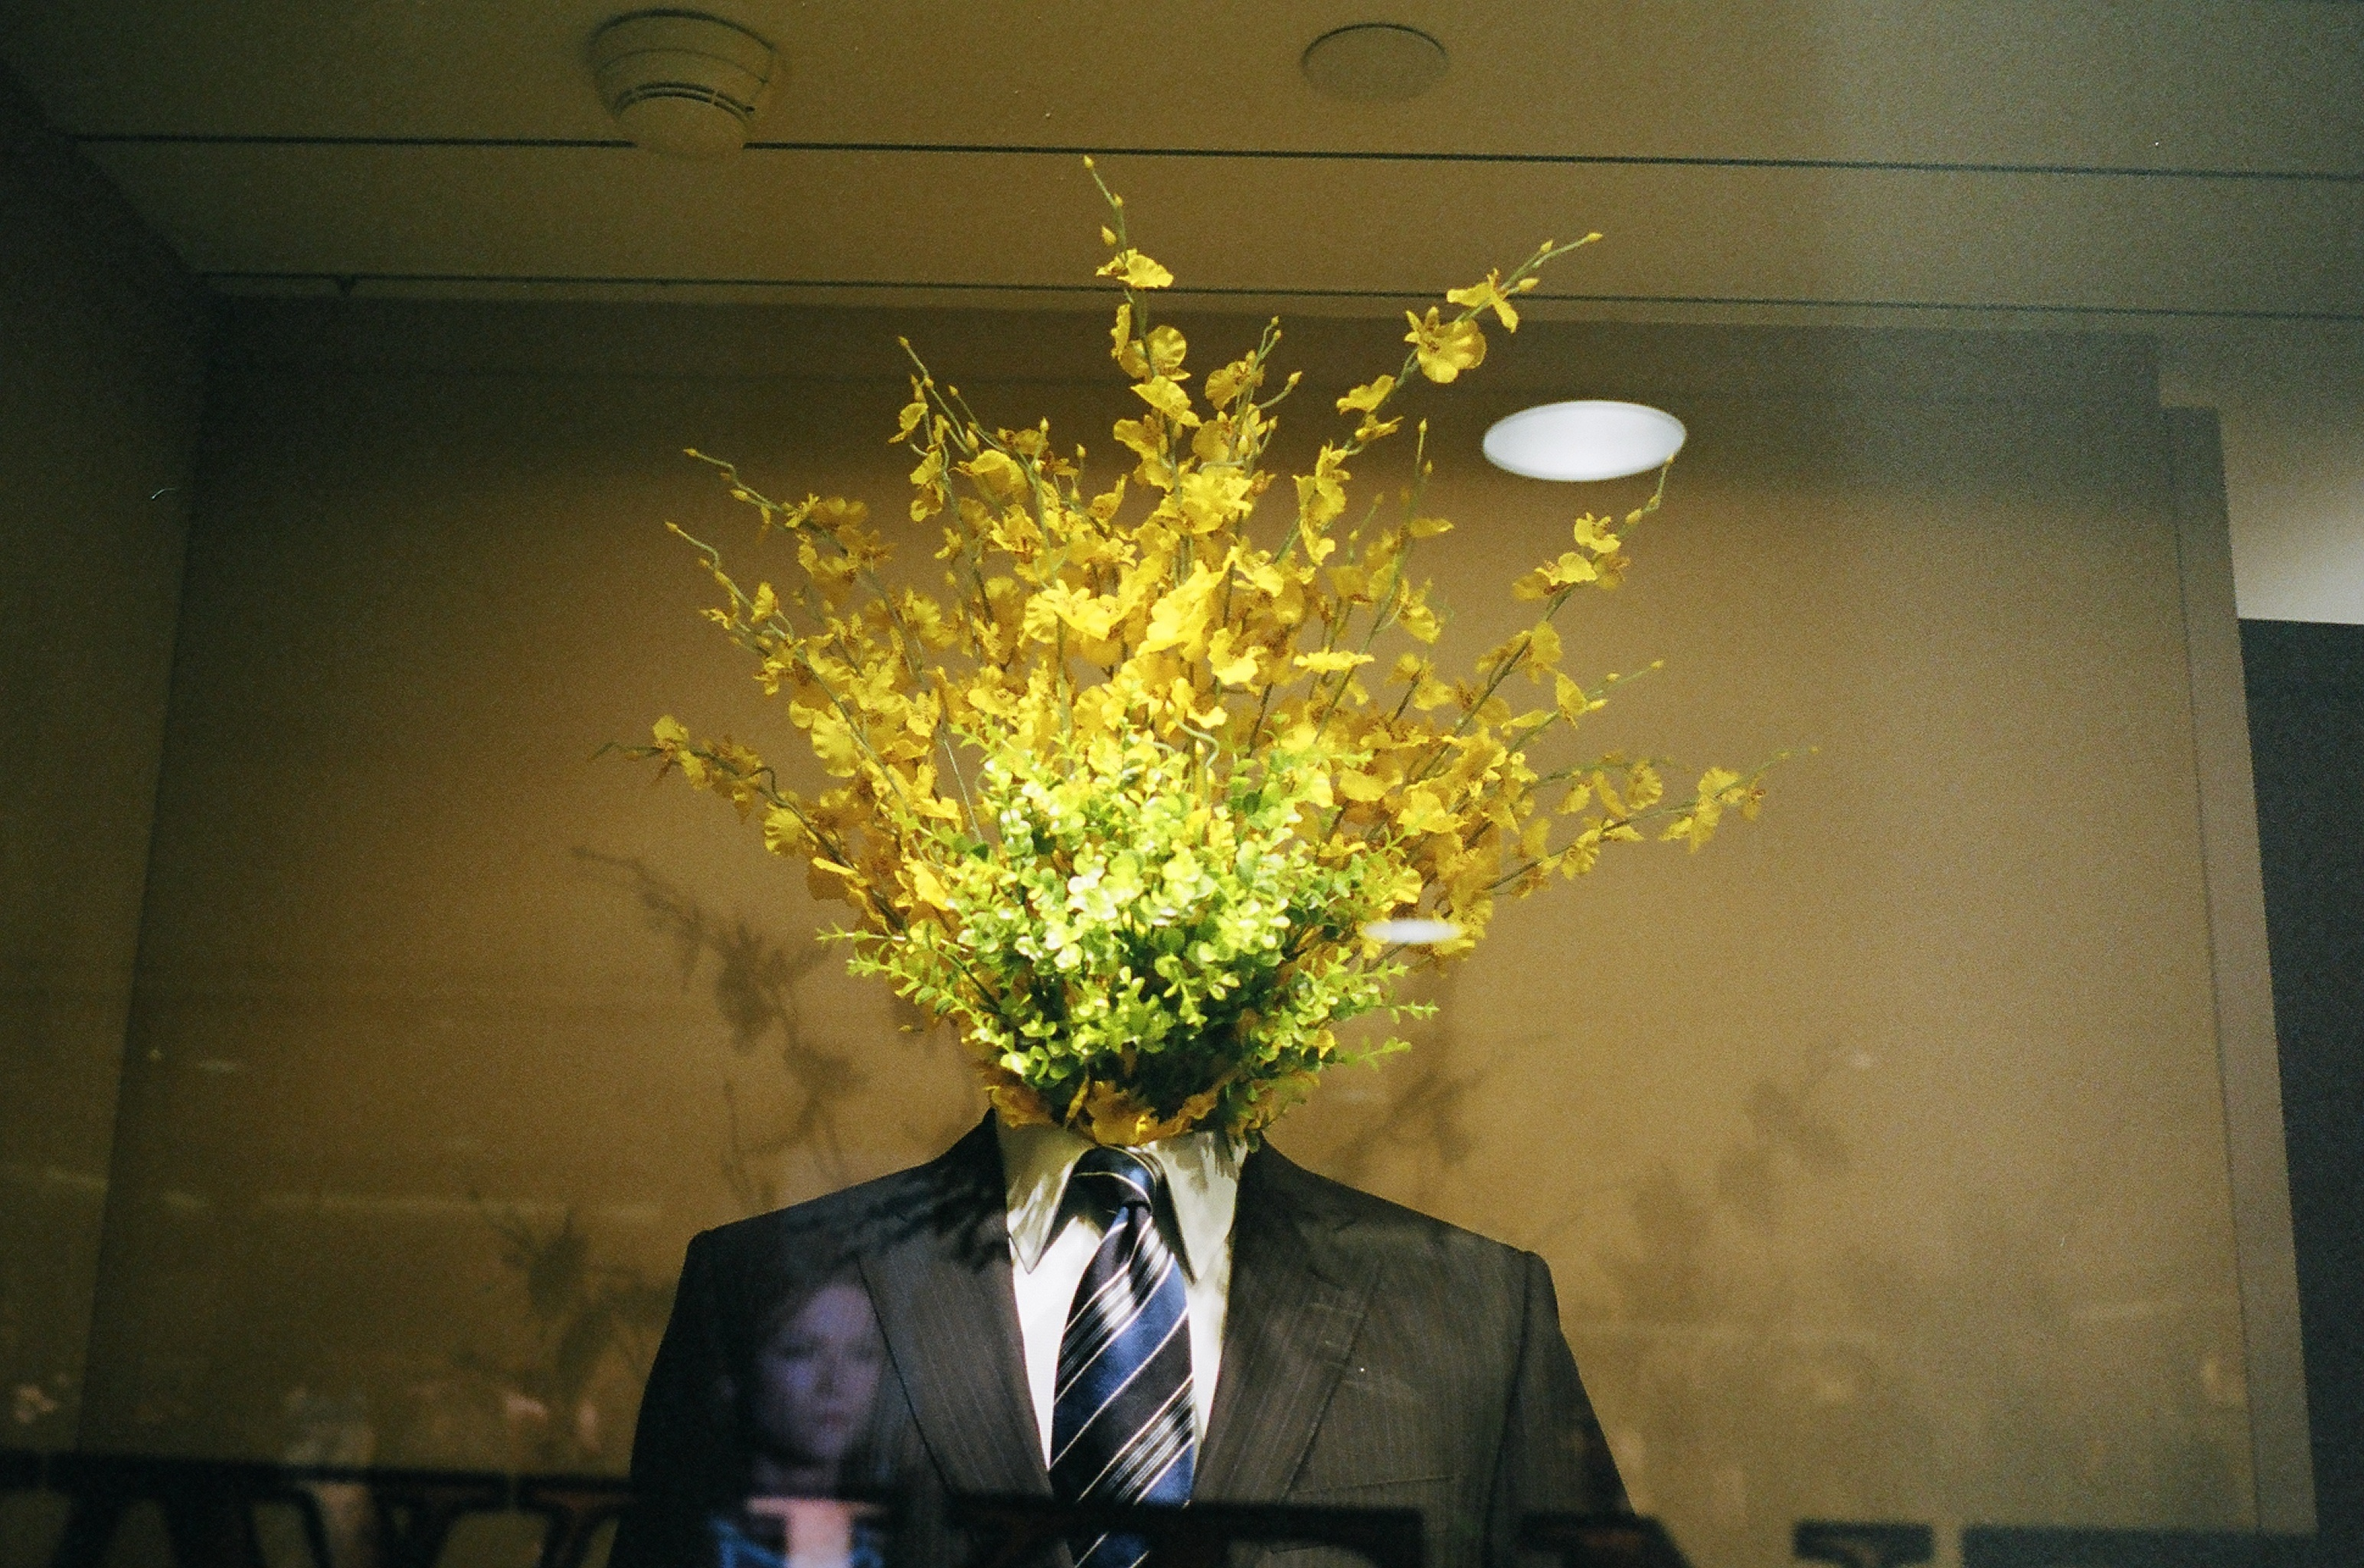 Suit head replaced with flowers